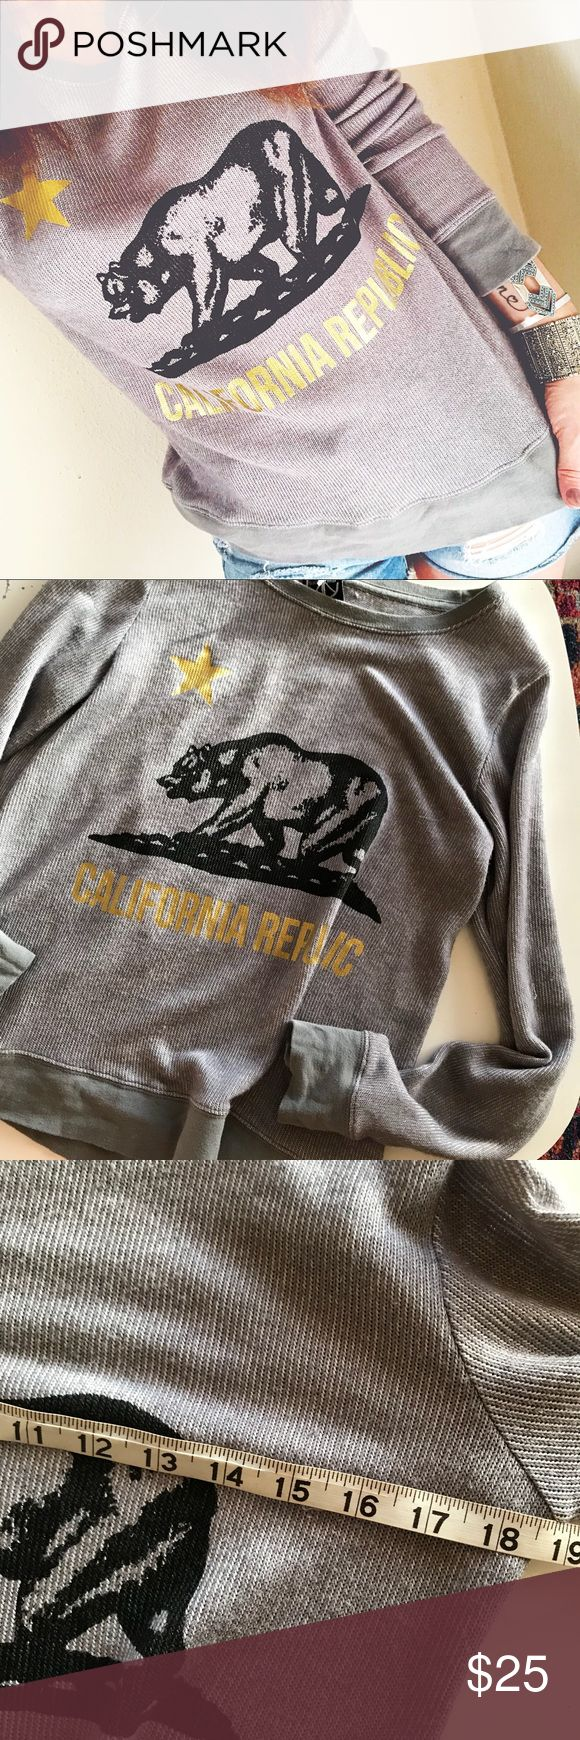 super soft California republic sweatshirt Such a comfortable sweatshirt! great condition! California logo graphic on front. Grey in color. Recycled Karma Tops Sweatshirts & Hoodies